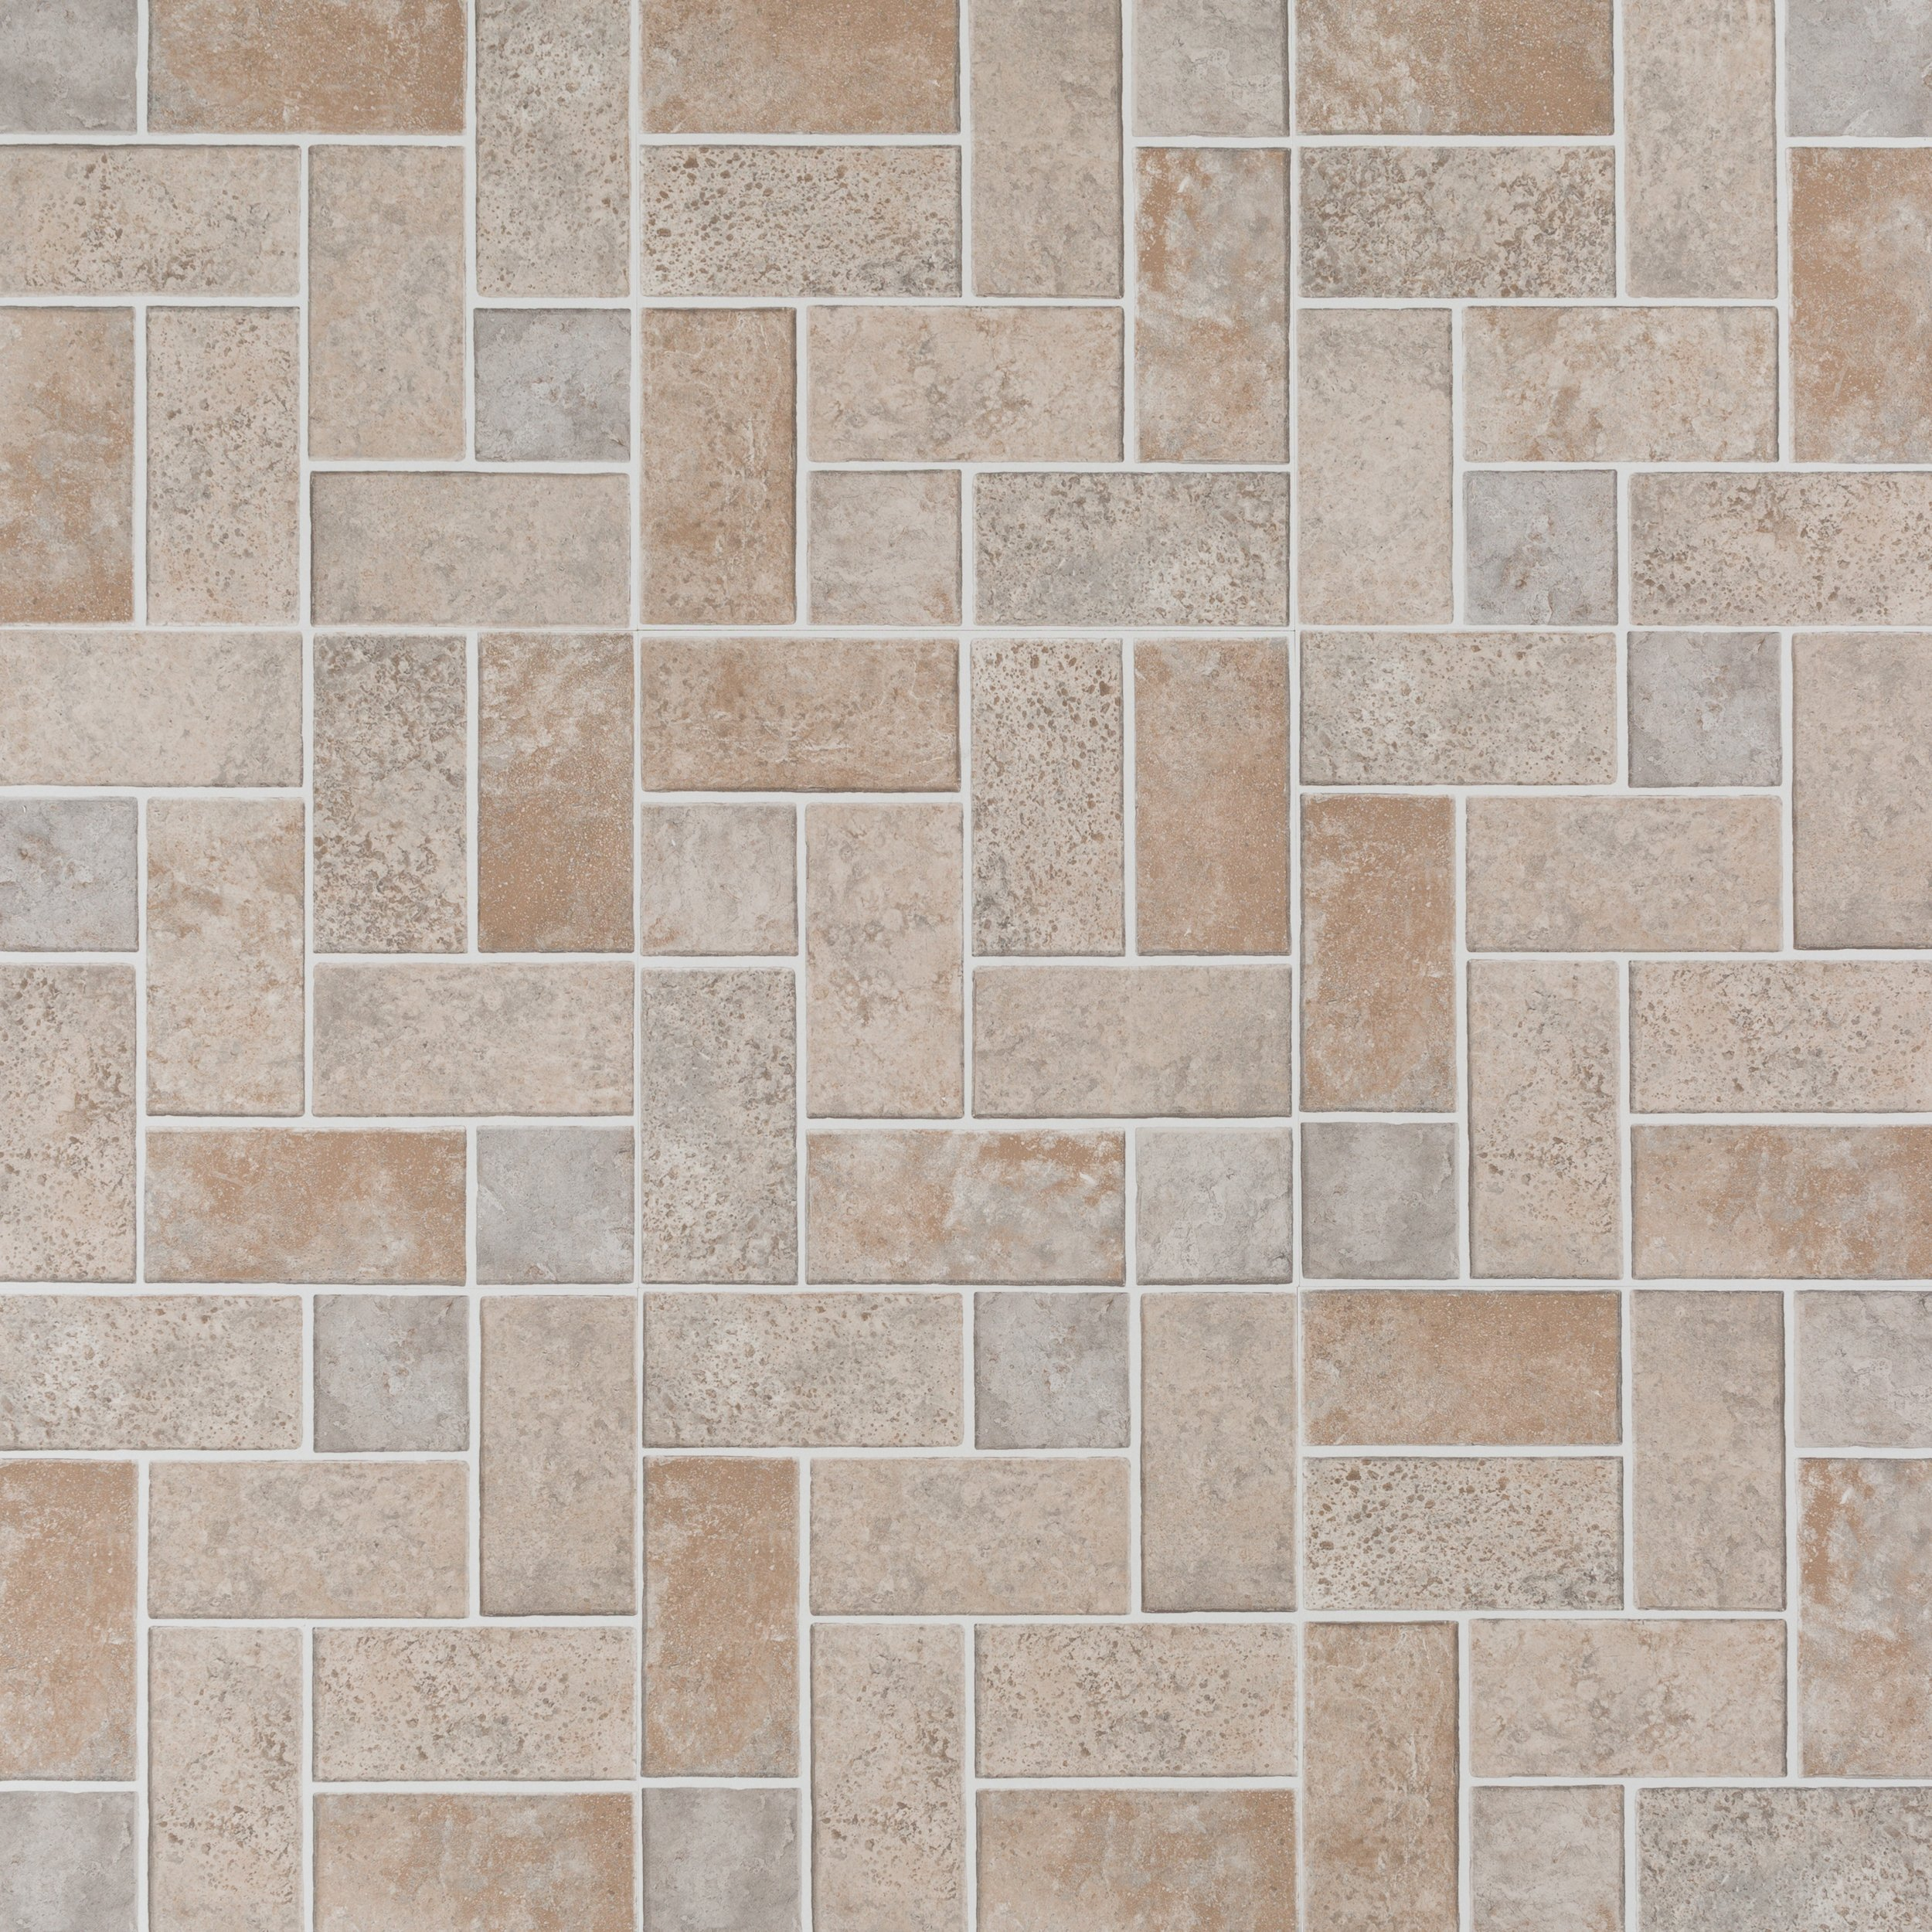 Brick Modular Gray Vinyl Tile 12in X 12in 100494368 Floor